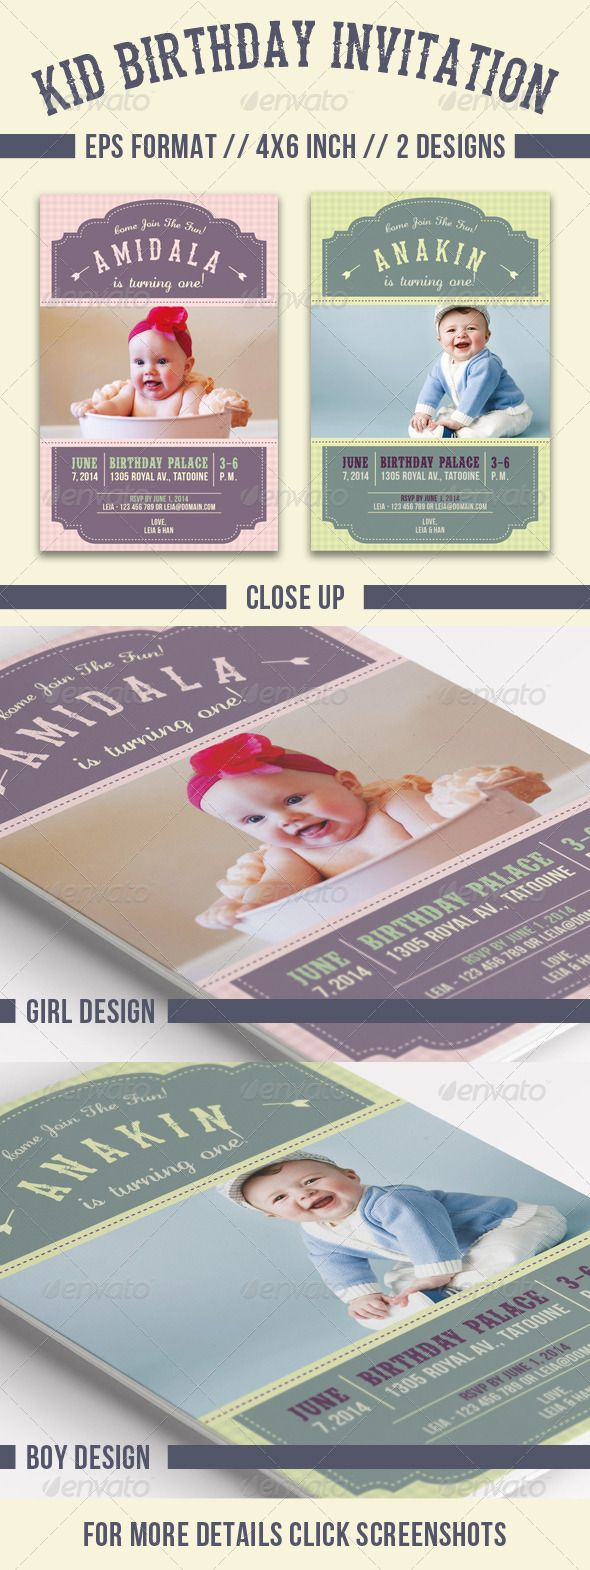 Kid Birthday Invitation Font Logo Fonts And Logos - Birthday invitation template graphicriver